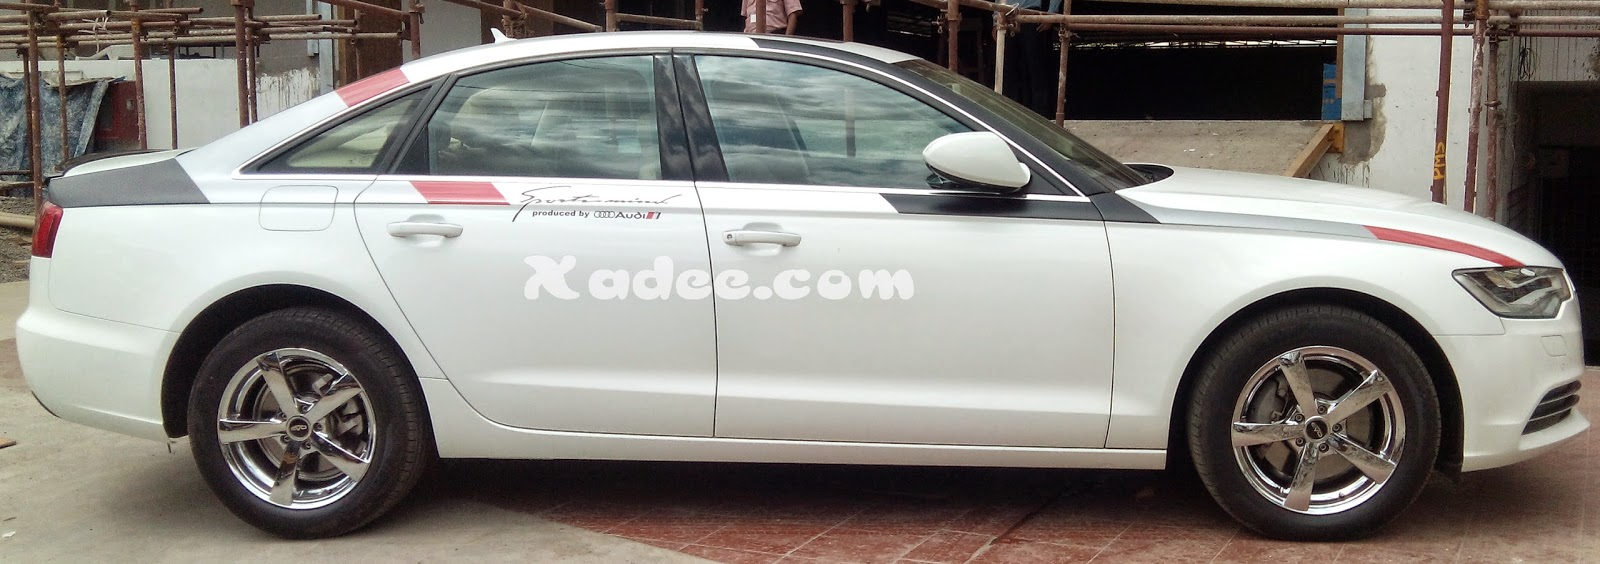 Stickering designs for audi a6